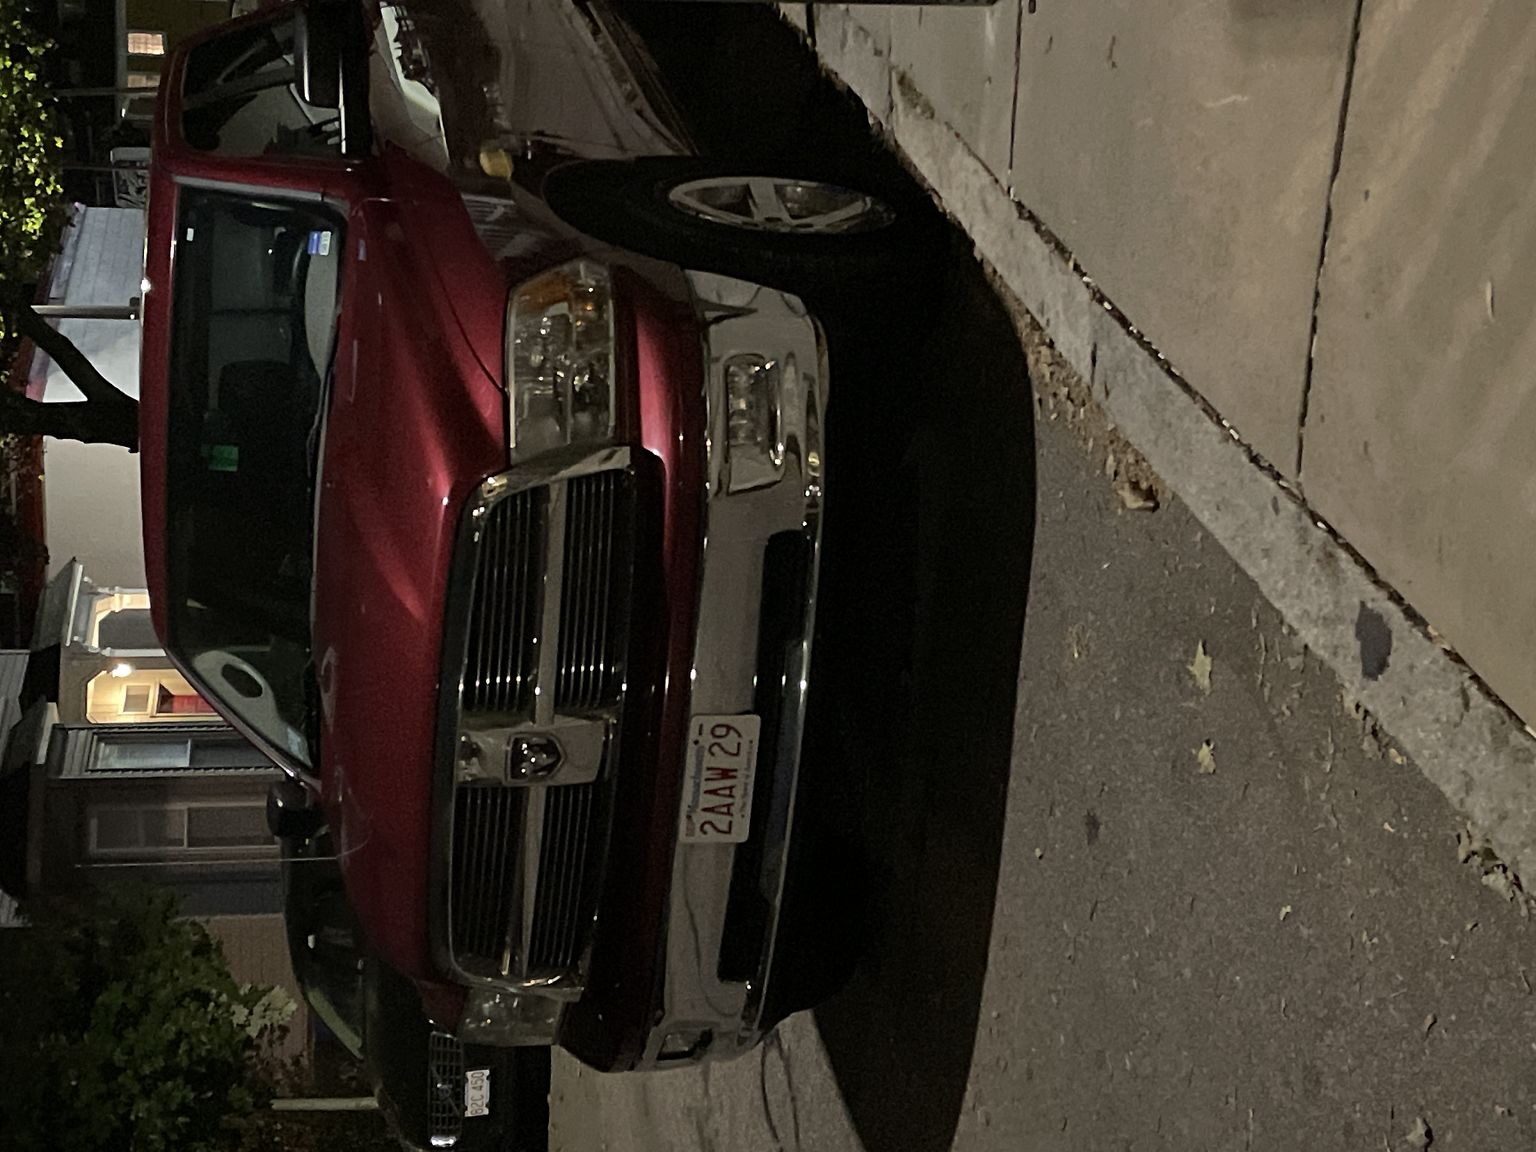 Plate number 22AAW29 red pick up truck blocking fire hydrant